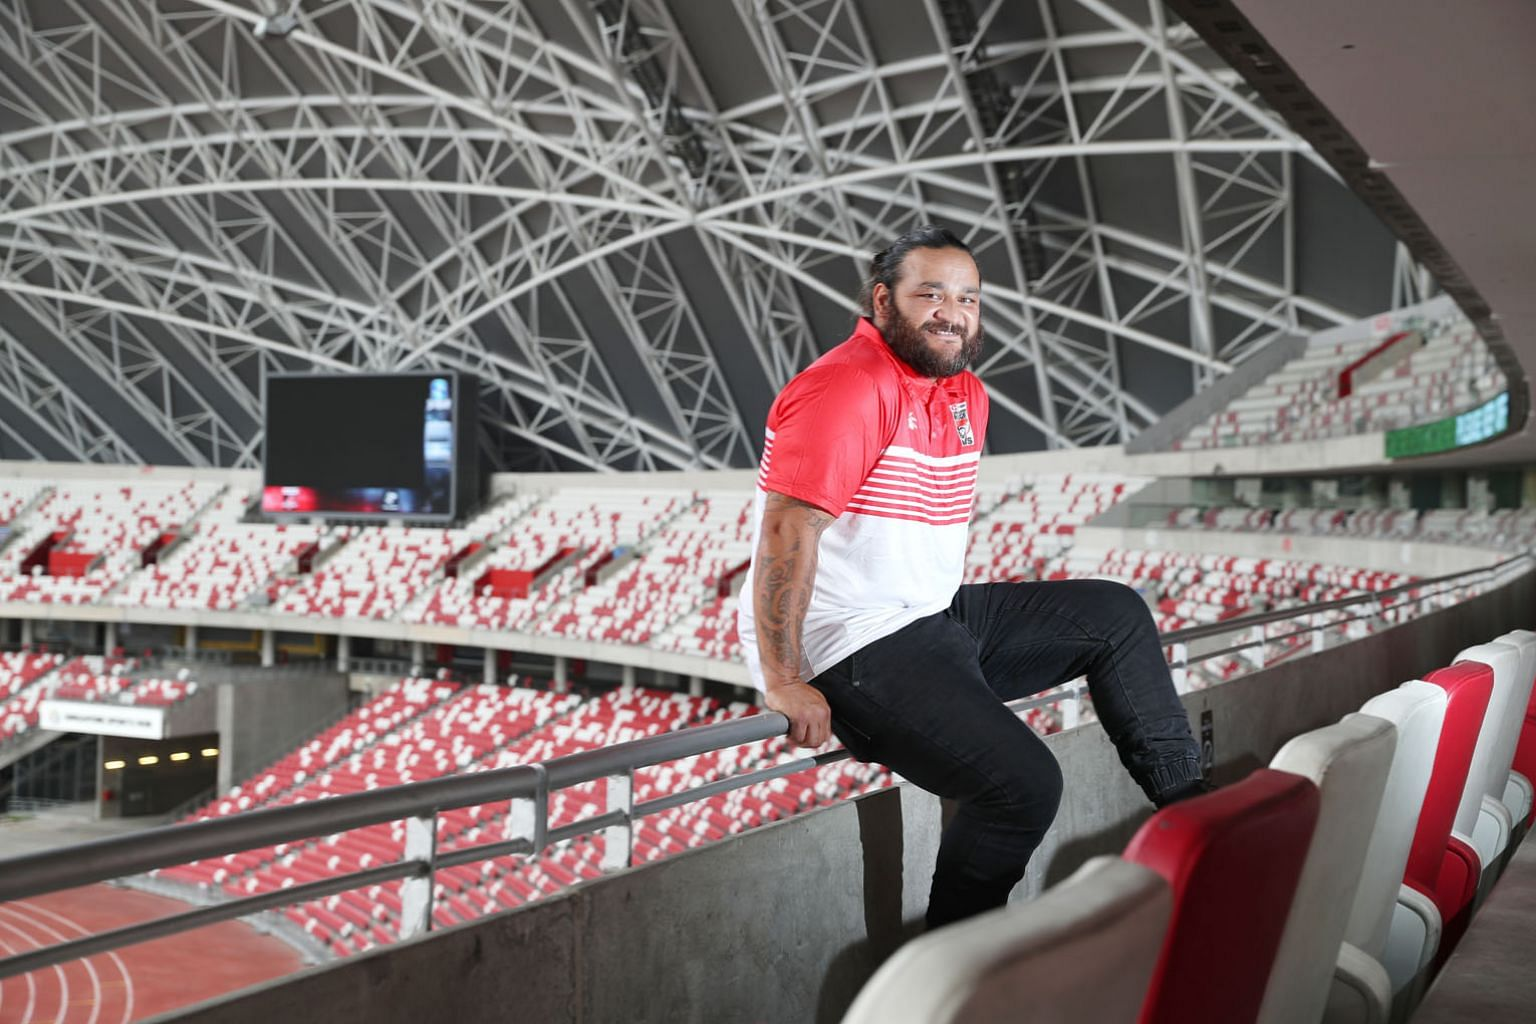 All Blacks World Cup winner Piri Weepu sees Ireland, Wales and England as New Zealand's biggest rivals in Japan in autumn. He is here to help promote the April 13-14 HSBC Singapore Rugby Sevens at the National Stadium.